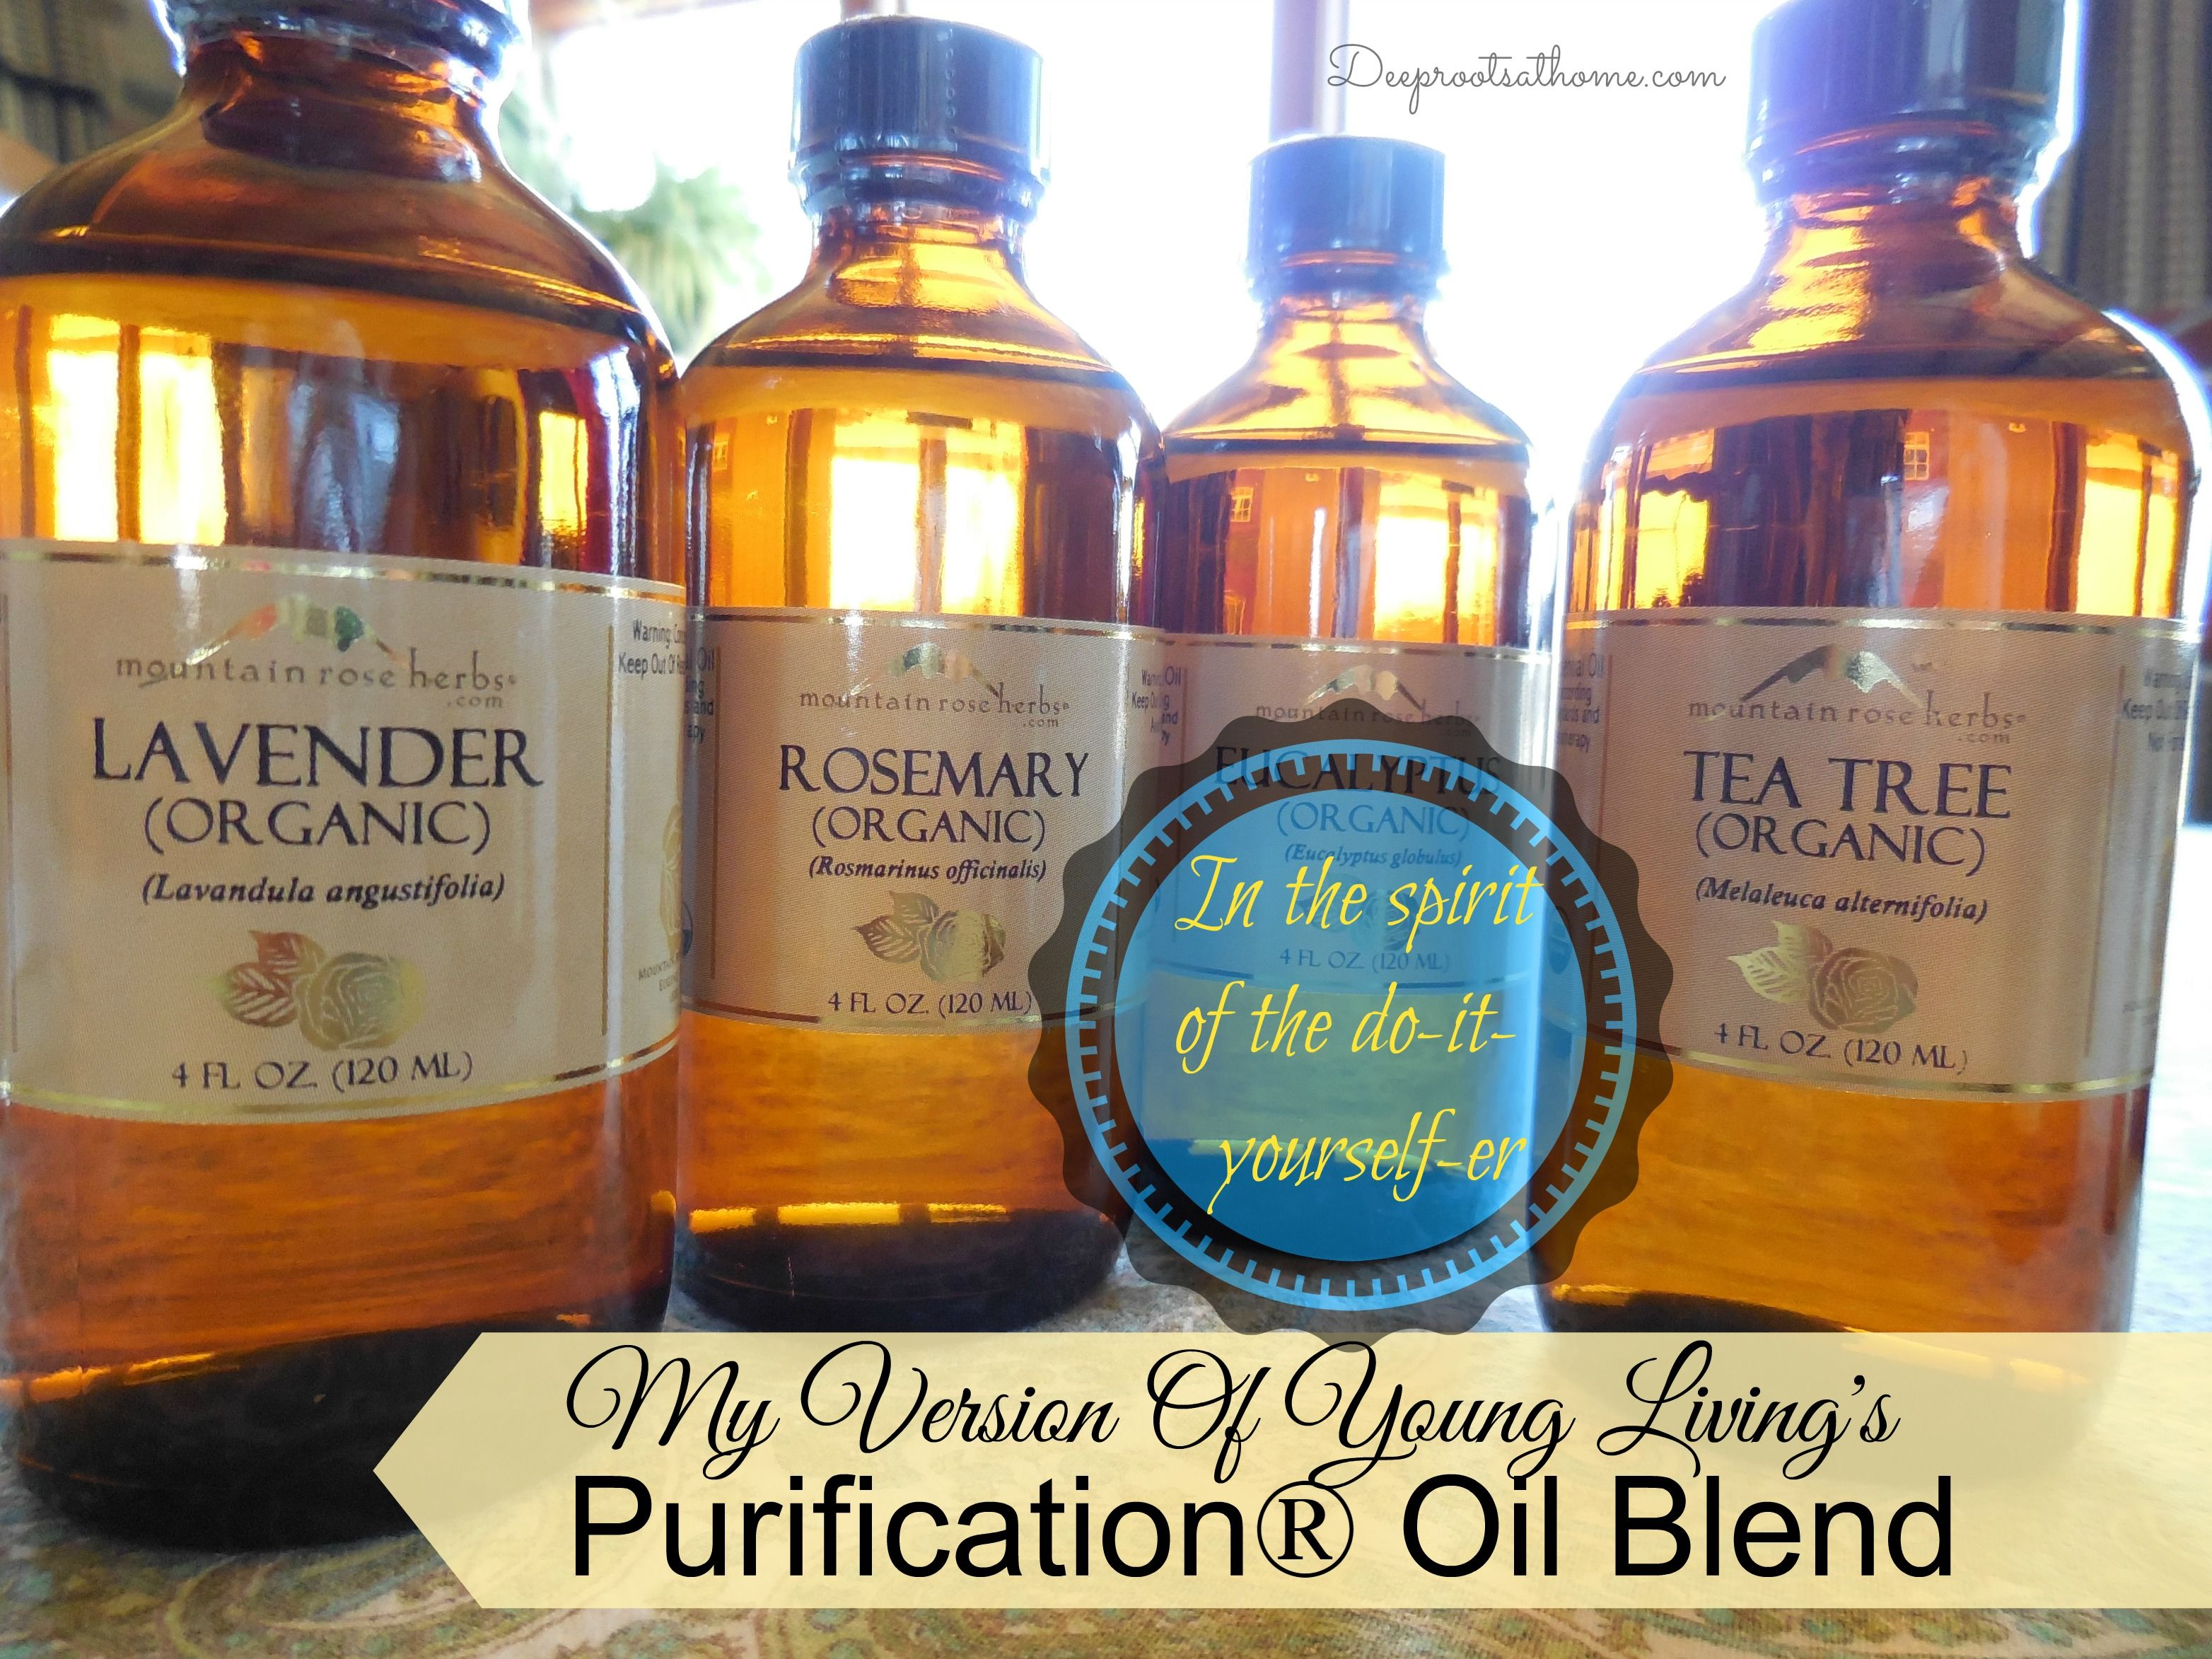 My Version Of Purification® Essential Oil Blend | Deep Roots at Home